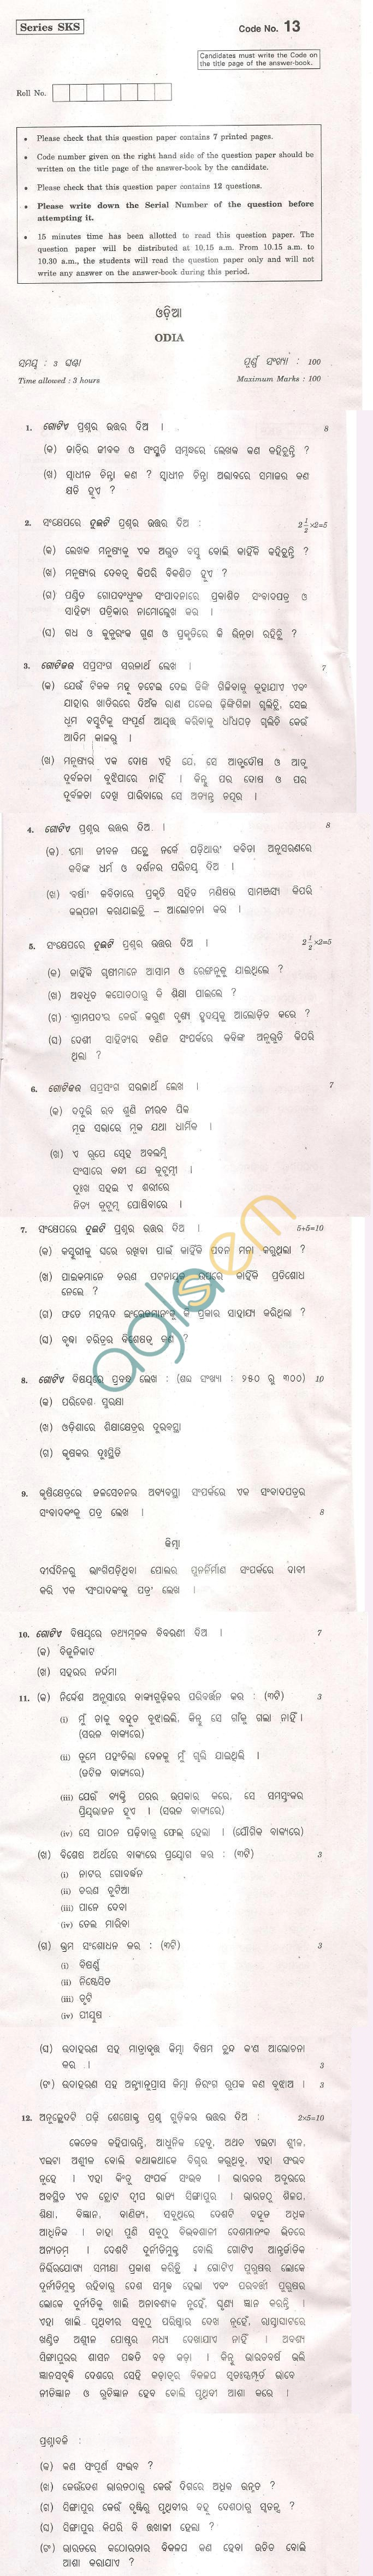 CBSE Board Exam 2013 Class XII Question Paper - Odia